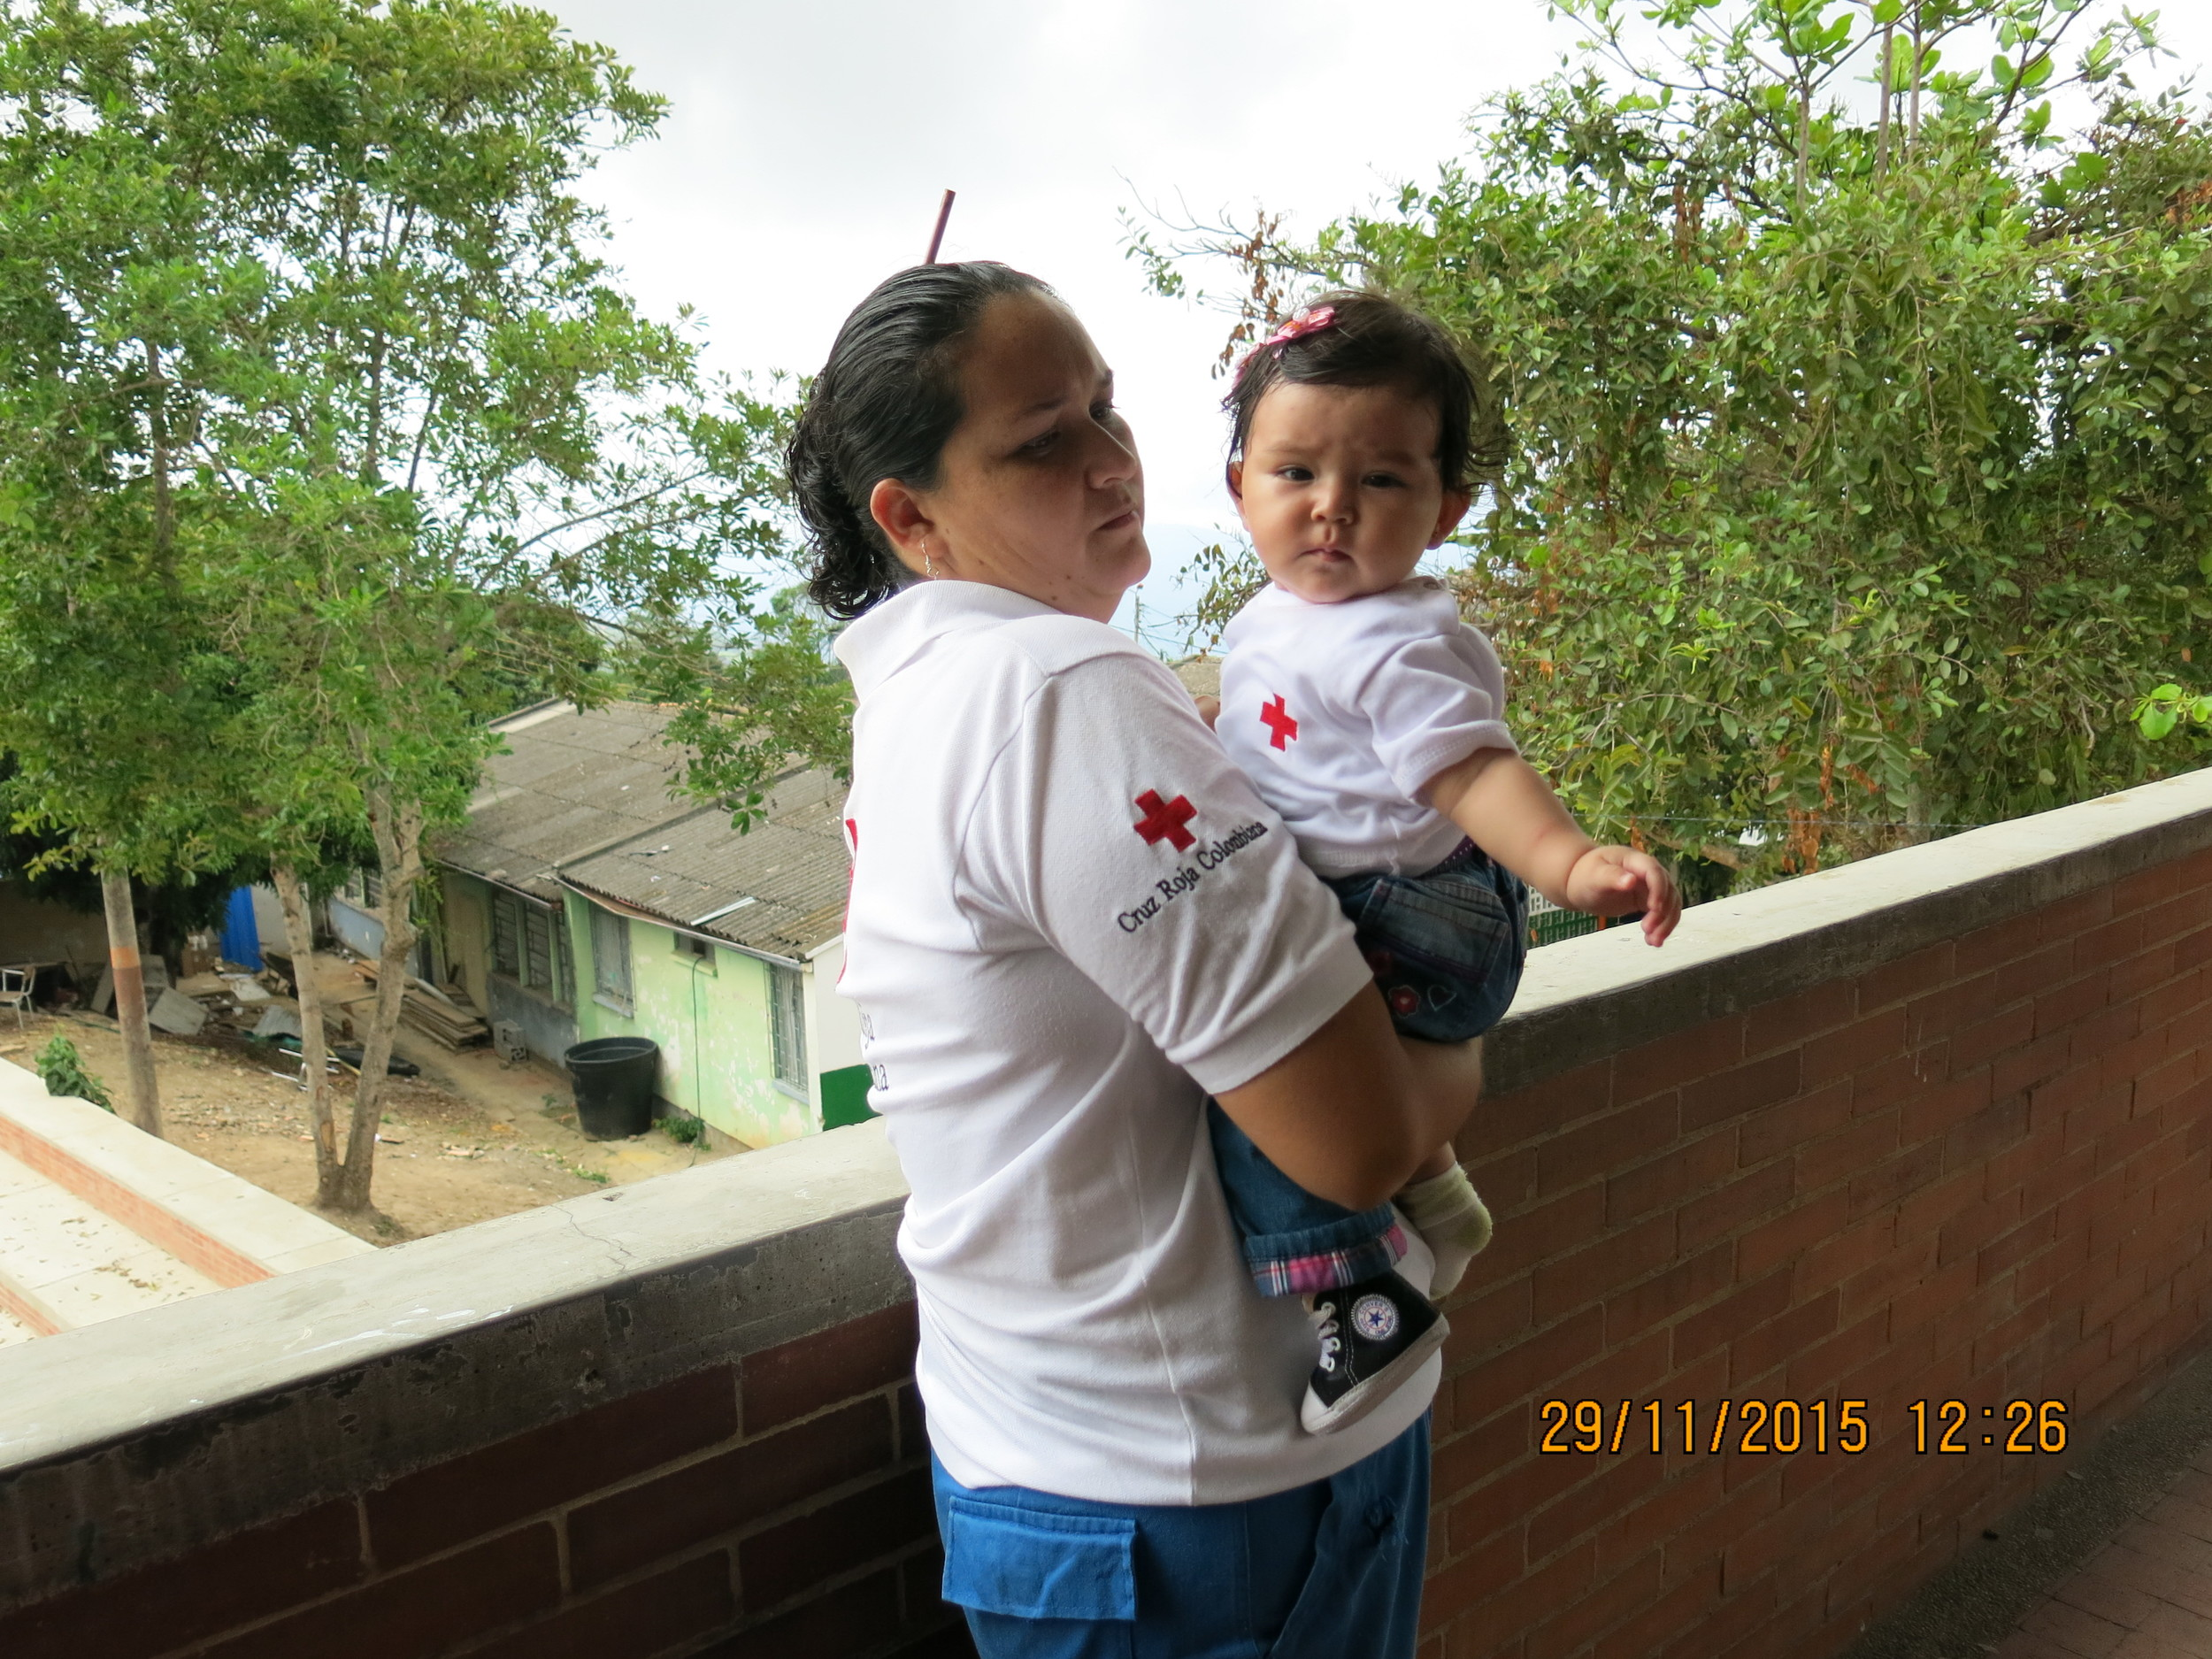 Bebé Cruz Rojista / Red Cross baby